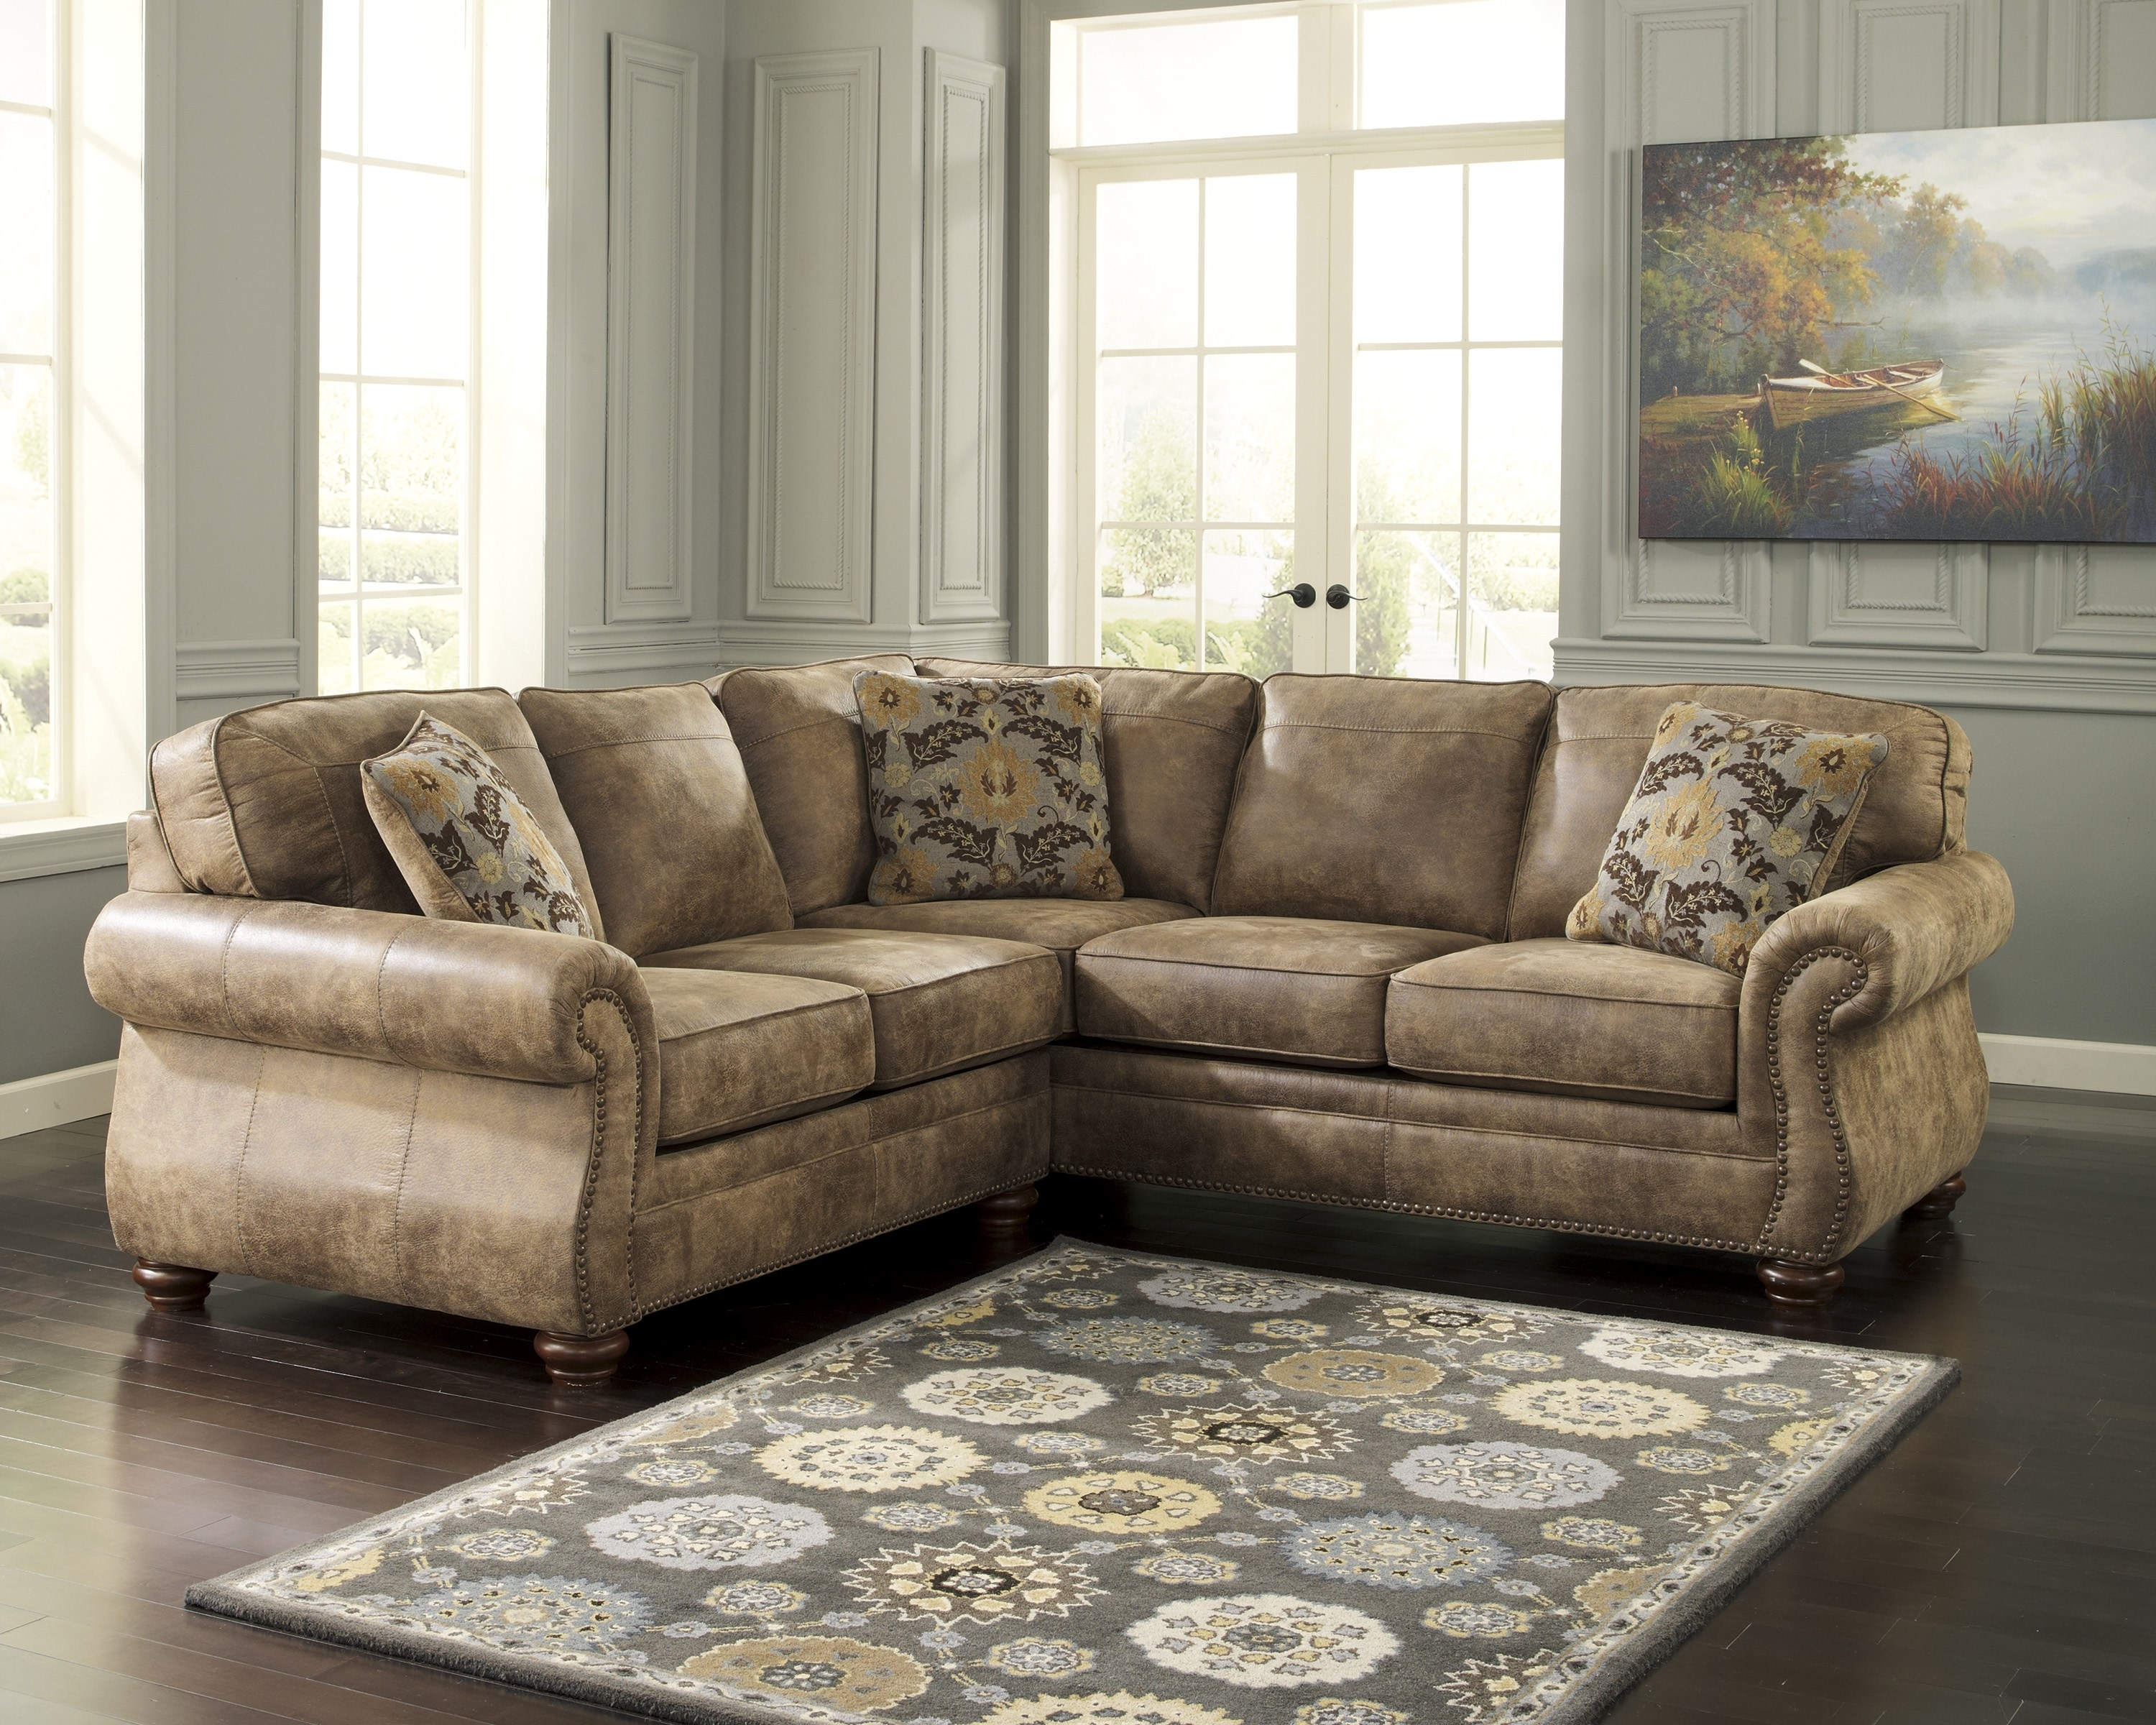 Loveseat Sectional | Whitecraftwoodard Mona Wicker Right Arm Within Declan 3 Piece Power Reclining Sectionals With Left Facing Console Loveseat (Image 20 of 25)